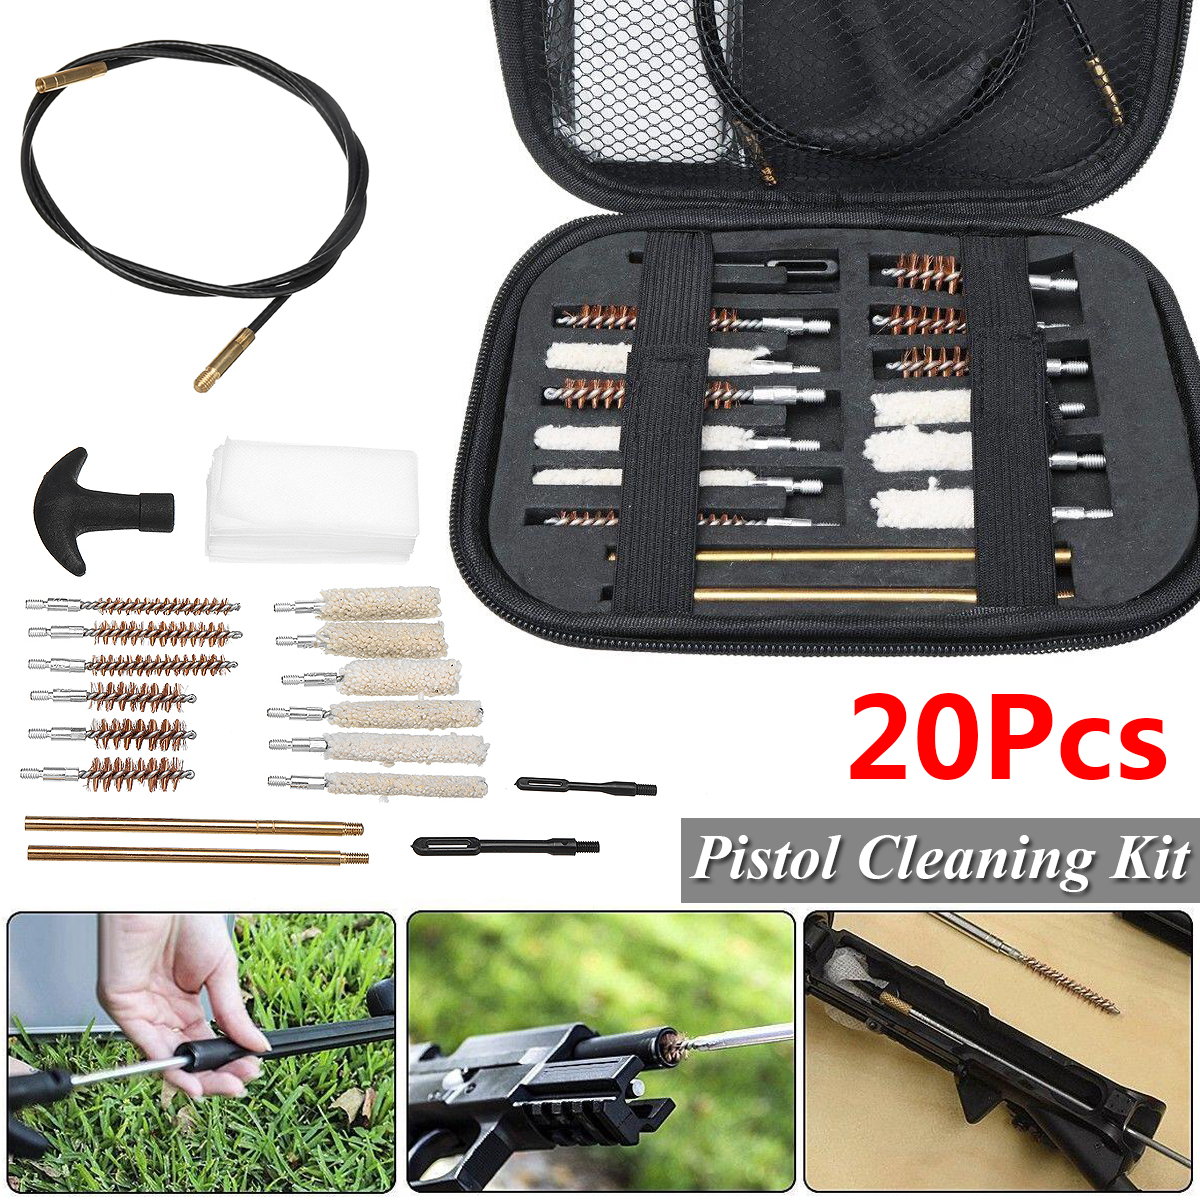 Cleaning-Kit Rifle-Brushes Pistol Carrying-Case 357 9mm for Size-22 357/38/40-44-45 Outdoor